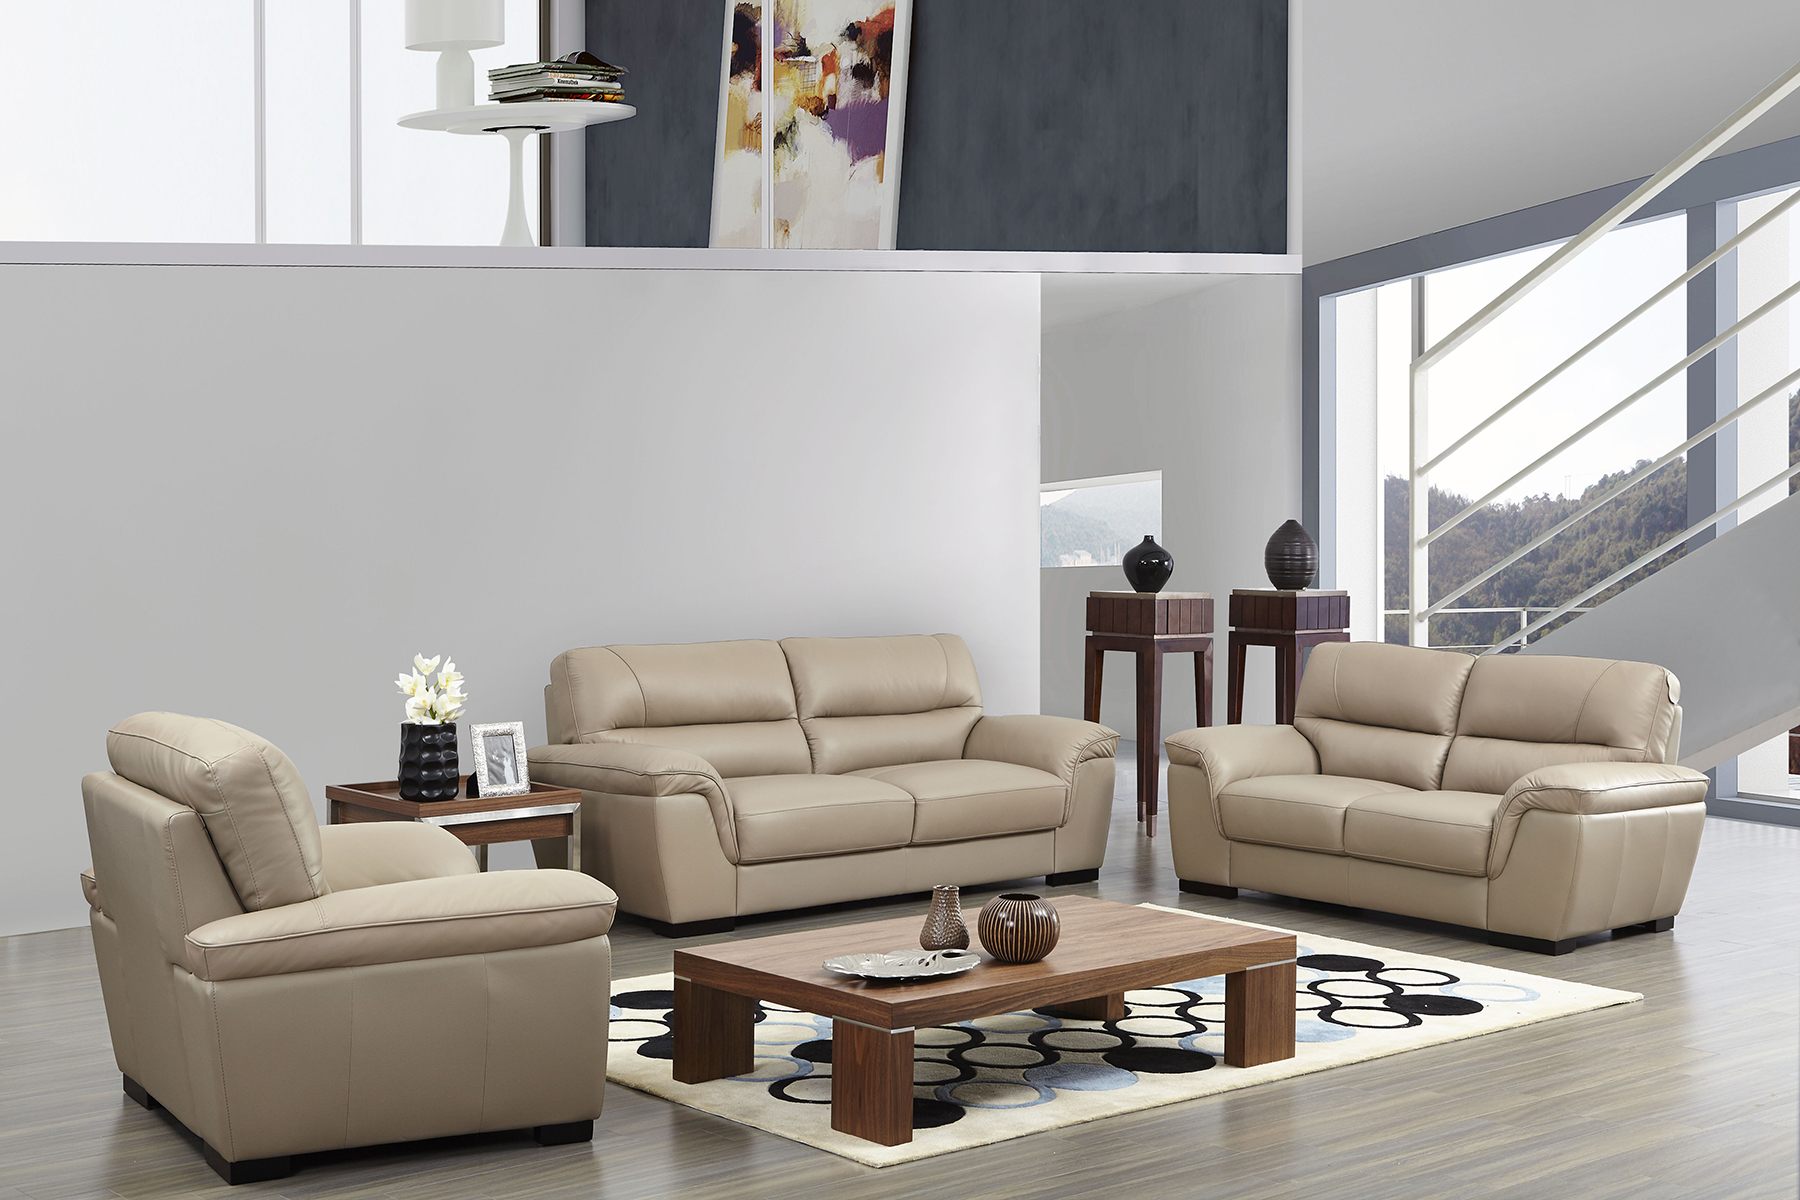 Picture of: Product Details Italian Leather Sofa